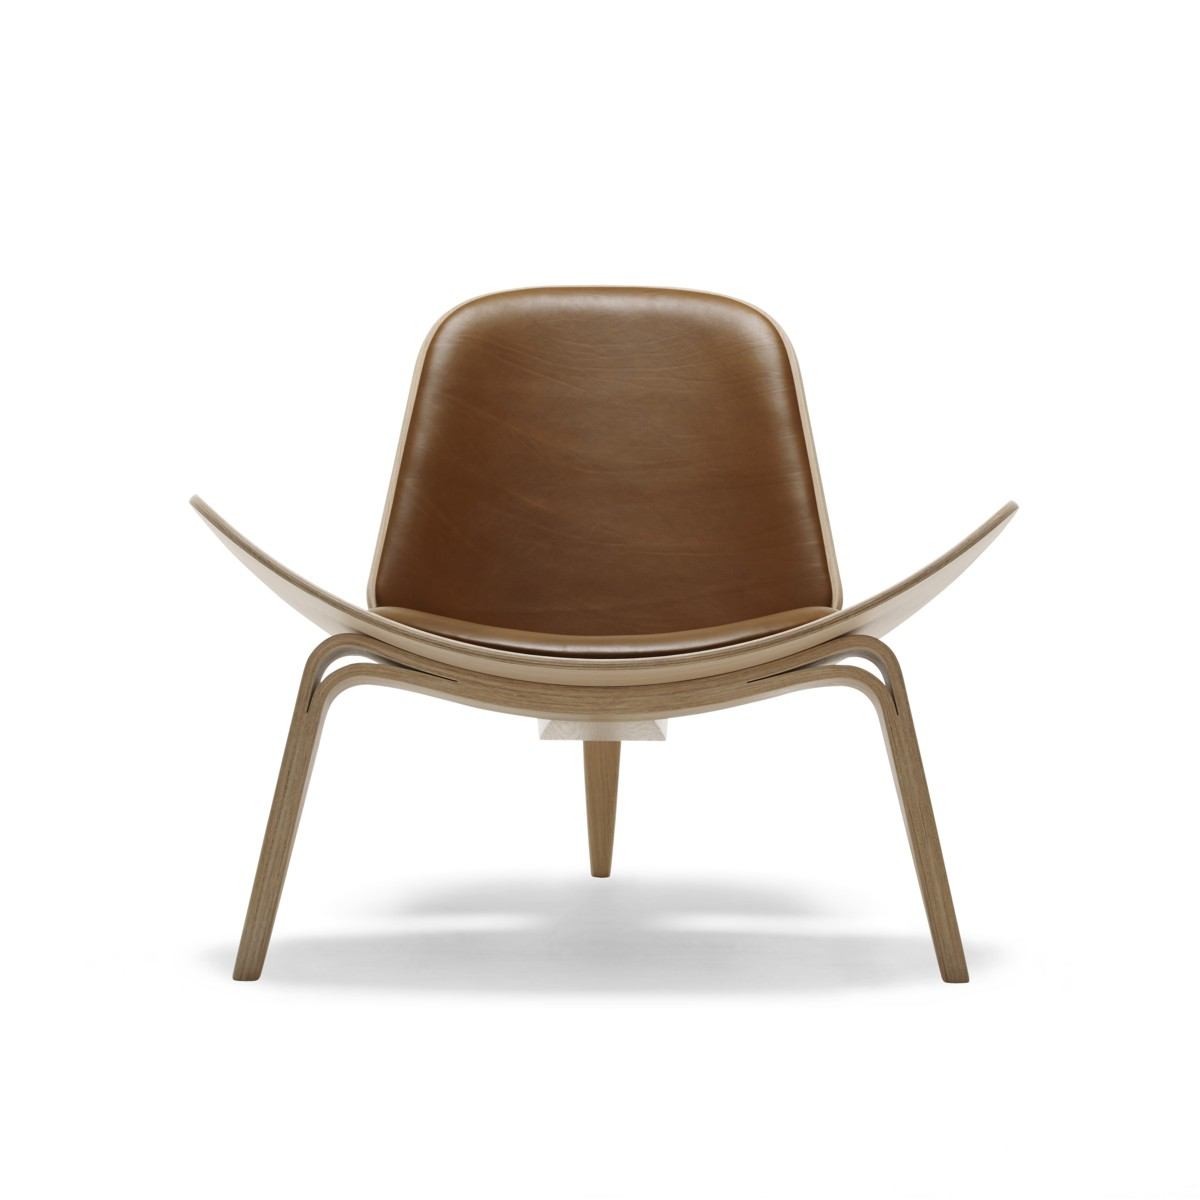 Front view of a Carl Hansen CH07 Shell chair